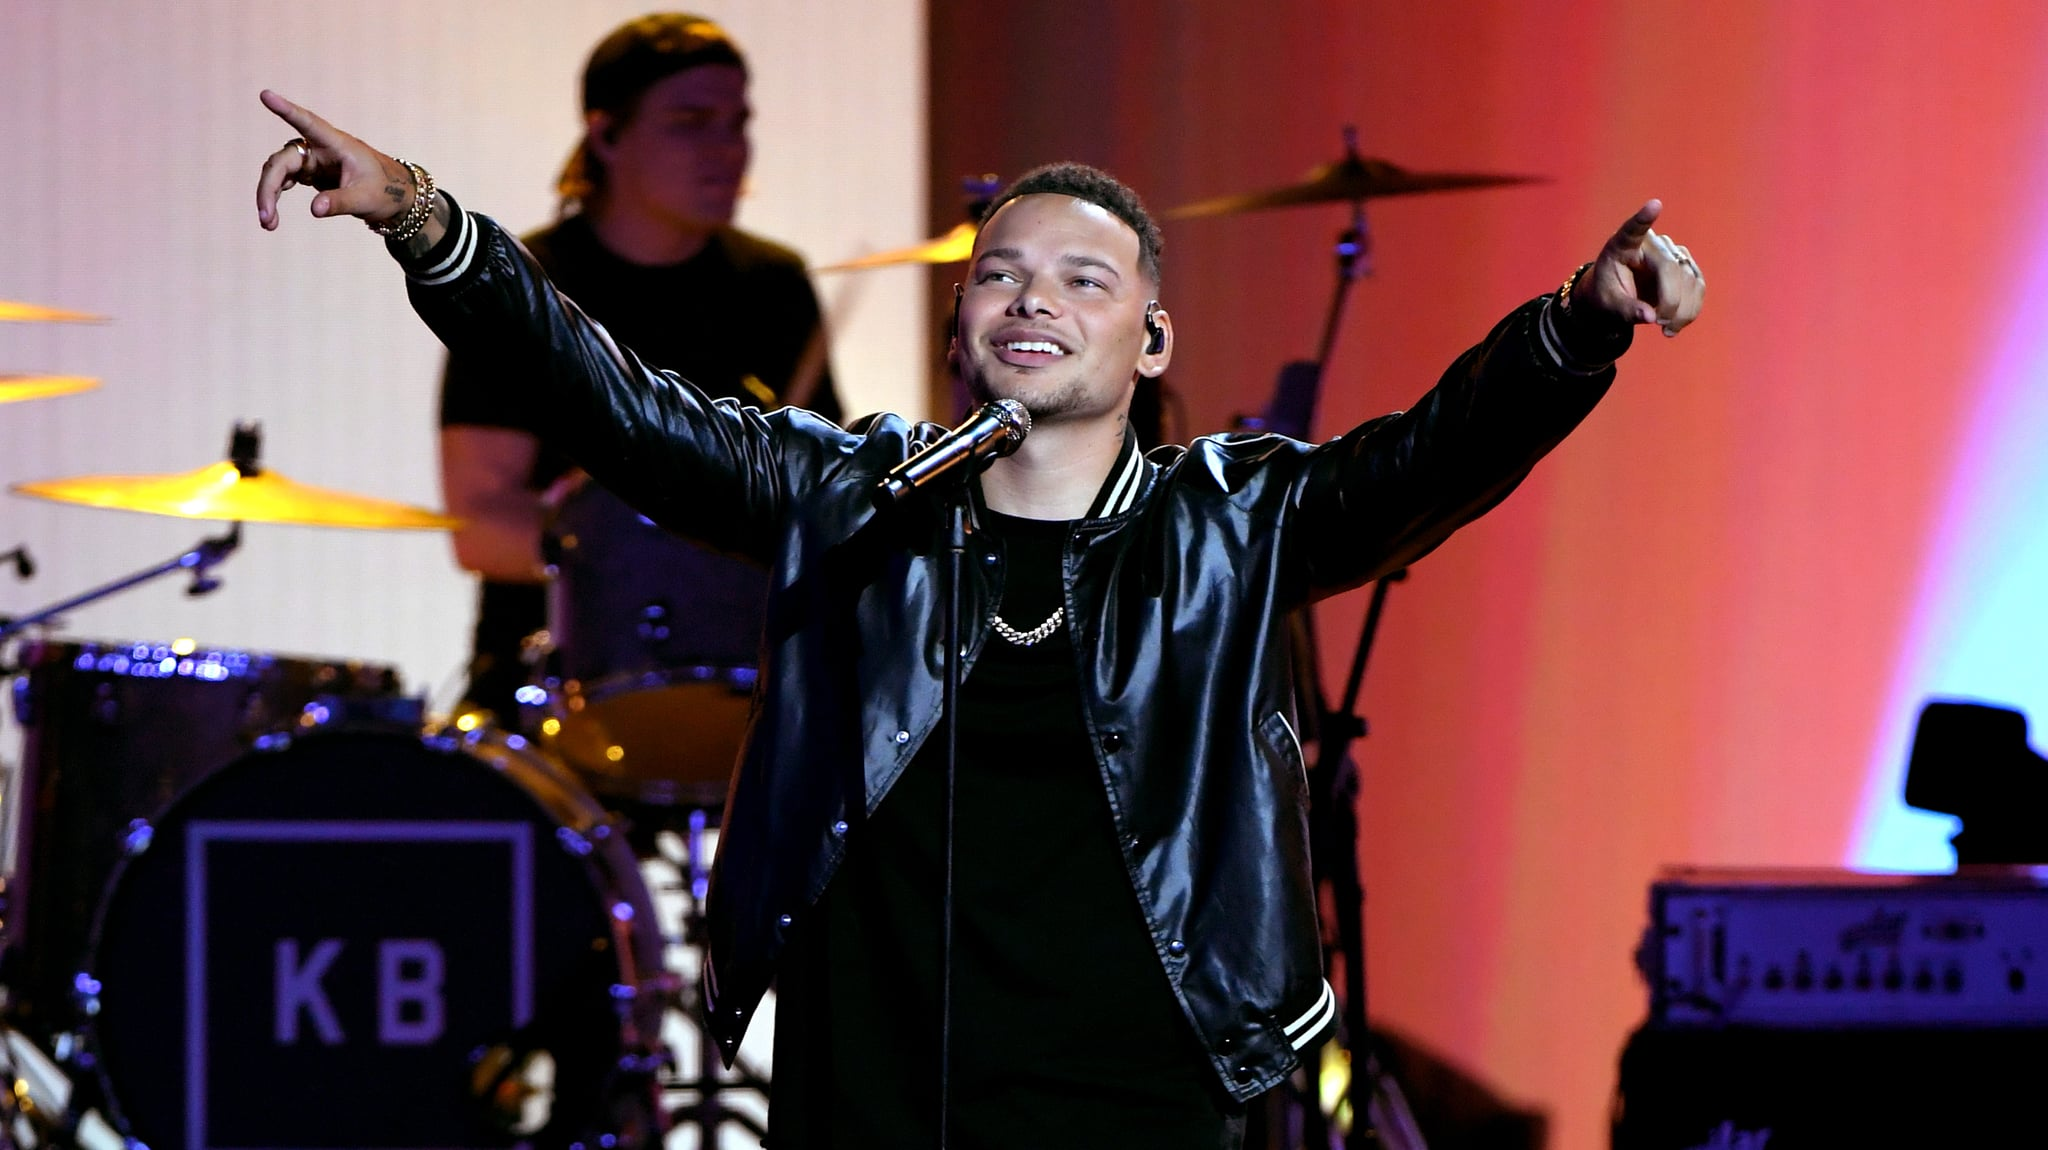 NASHVILLE, TENNESSEE - SEPTEMBER 14: Kane Brown performs onstage during the 55th Academy of Country Music Awards at the Grand Ole Opry on September 14, 2020 in Nashville, Tennessee. The ACM Awards airs on September 16, 2020 with some live and some prerecorded segments.  (Photo by Jason Kempin/ACMA2020/Getty Images for ACM)